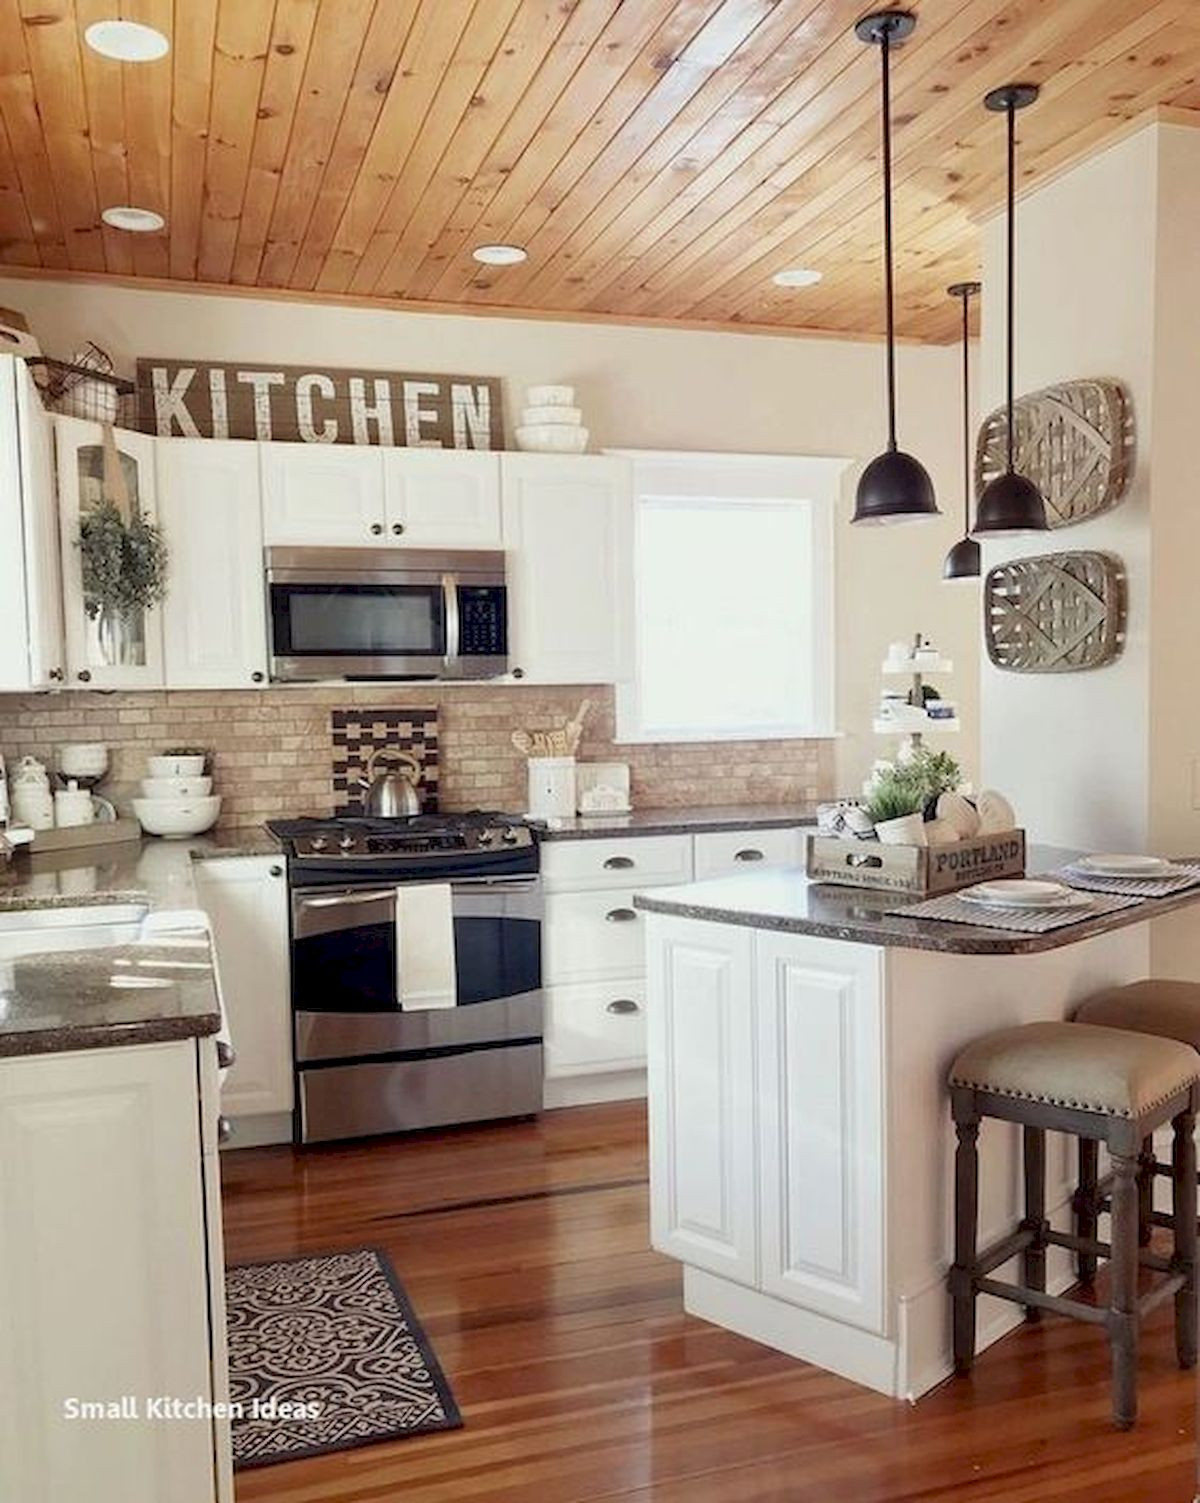 Kitchen Wall Signs  37 Best Farmhouse Wall Decor Ideas for Kitchen Ideaboz